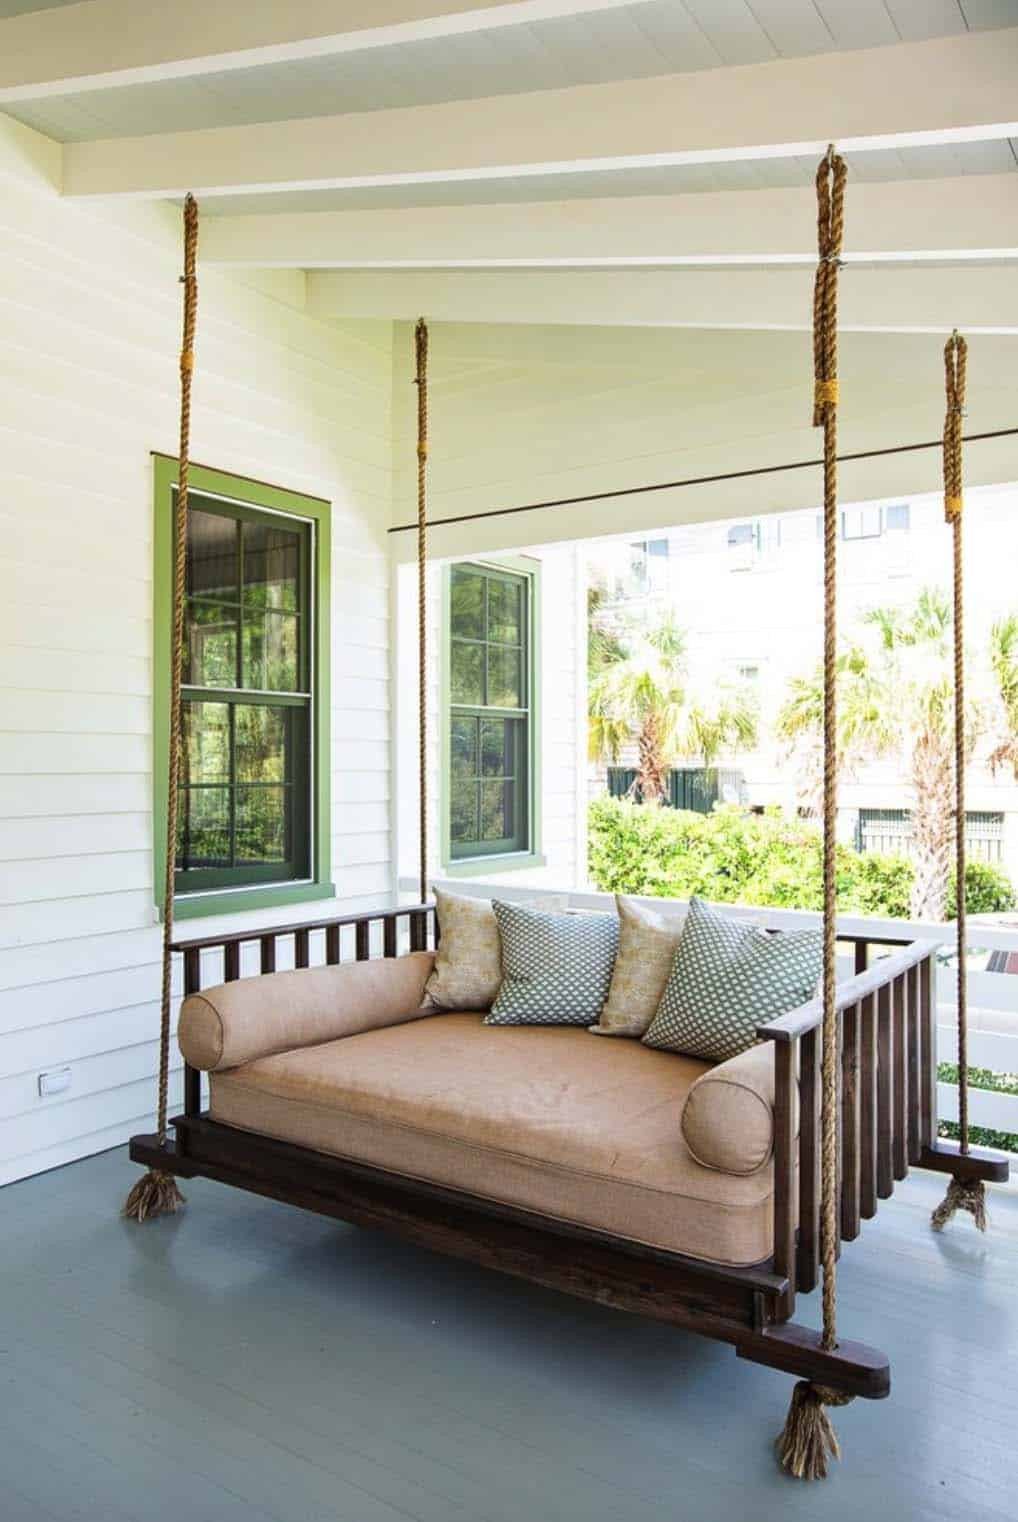 Fabulous Outdoor Swing Beds-15-1 Kindesign